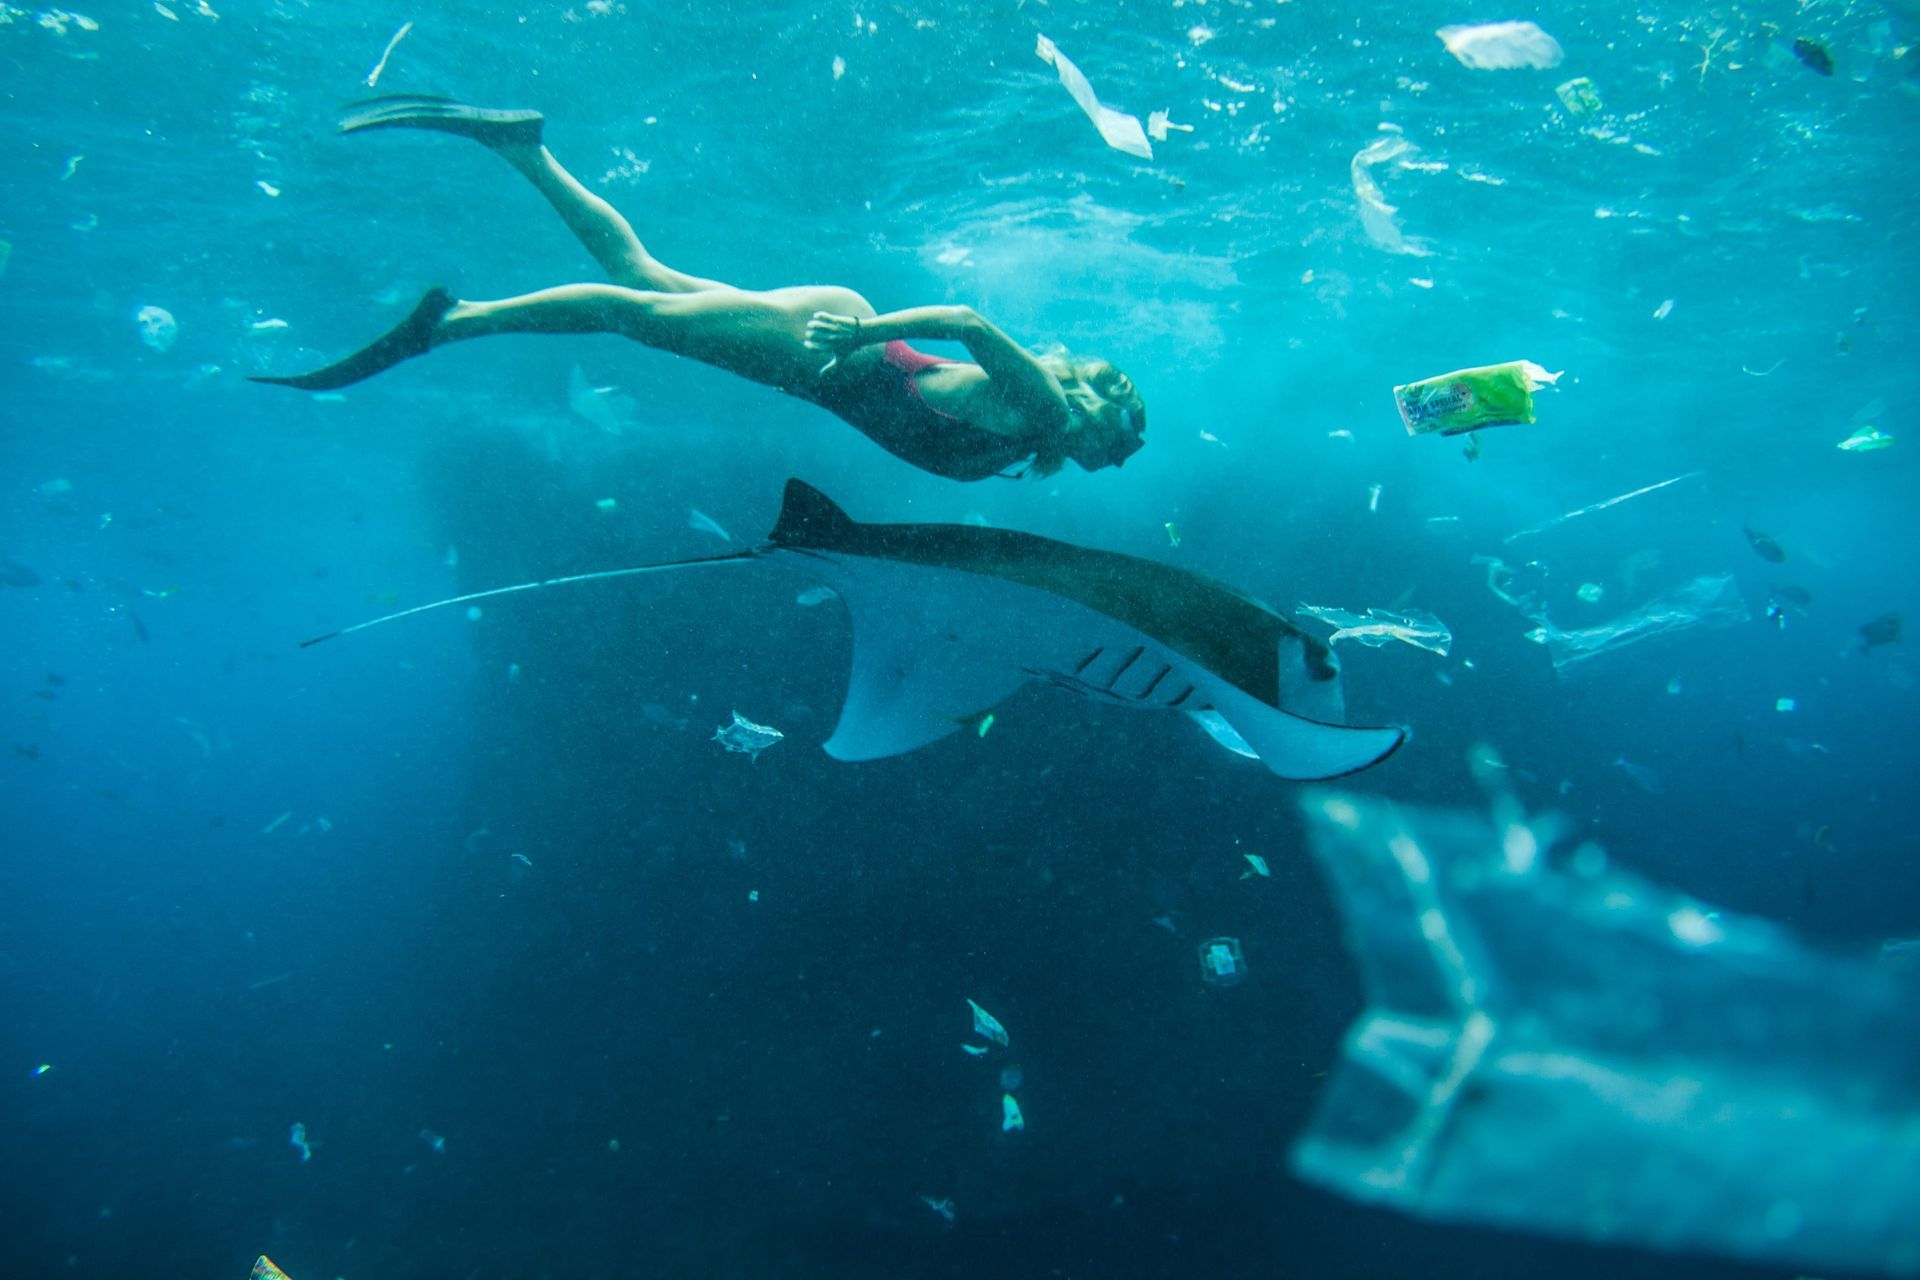 Use your creativity to create an ocean of change by inspiring others to consider the impact of plastics on the planet